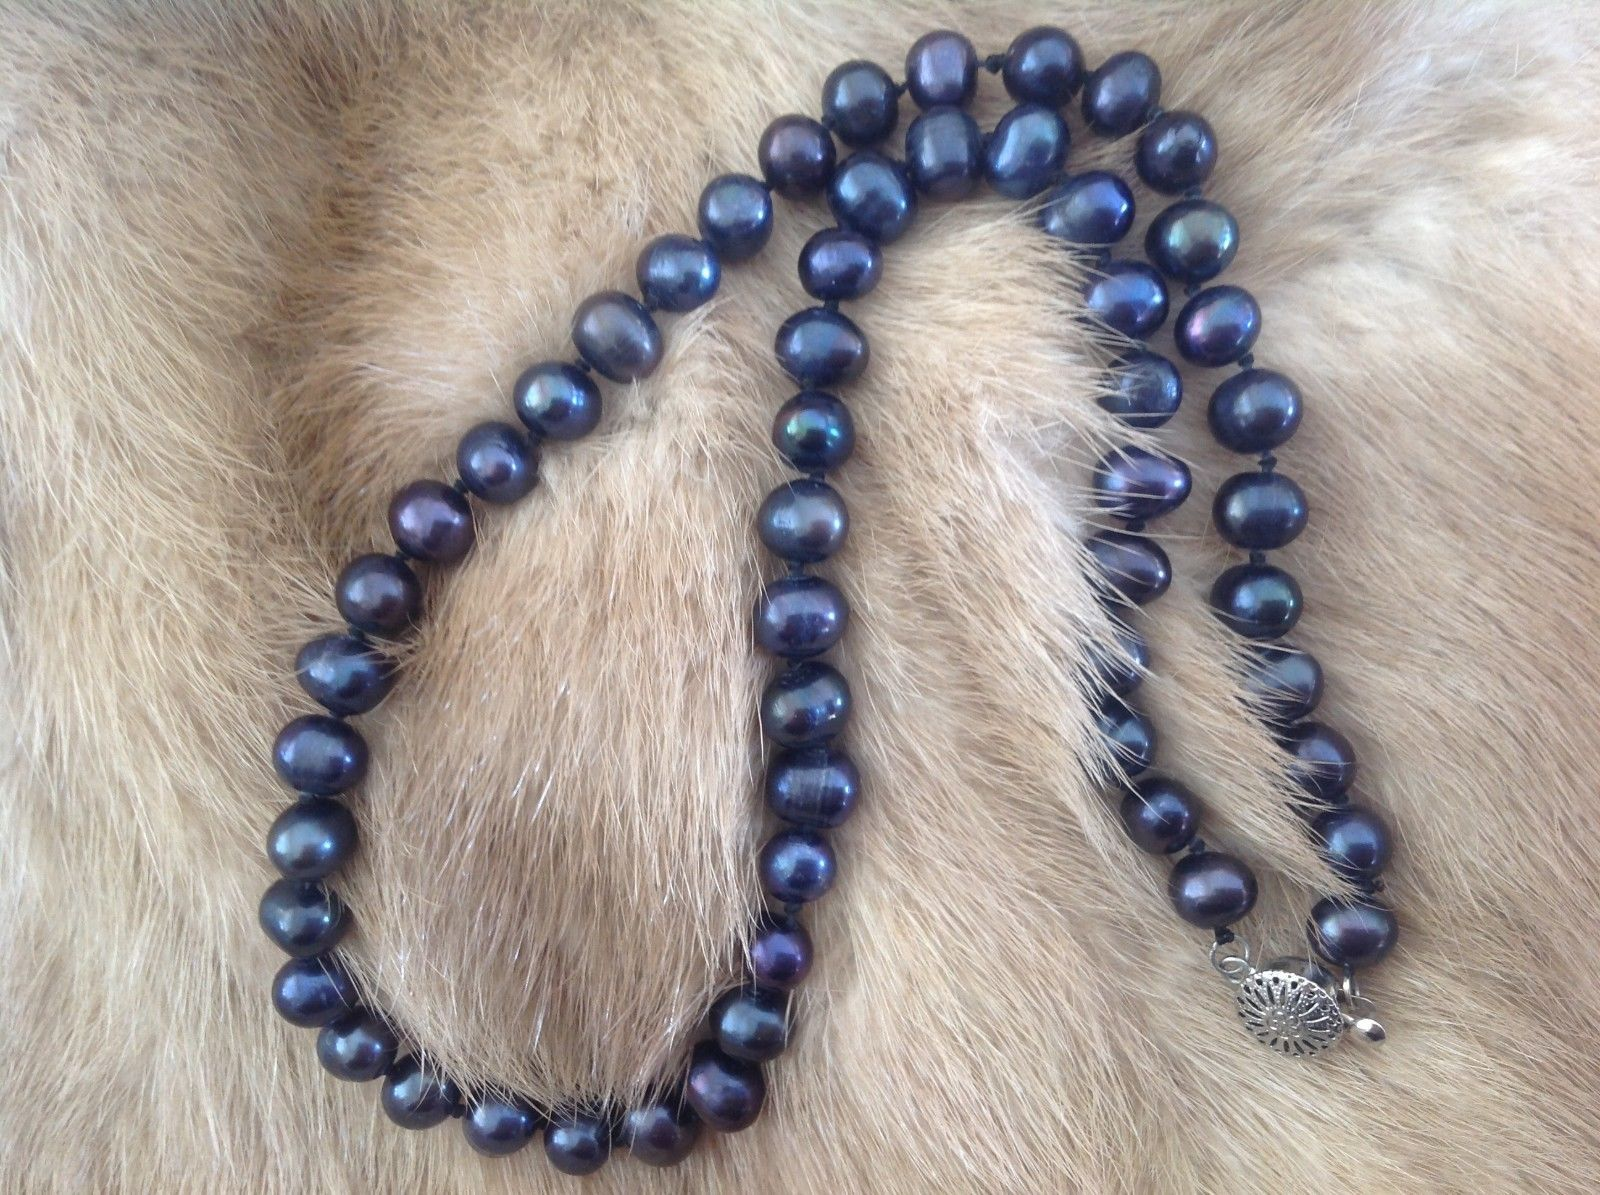 Gorgeous Black Pearl Necklace 17 Inches Long lovely mix potatoes and ringers